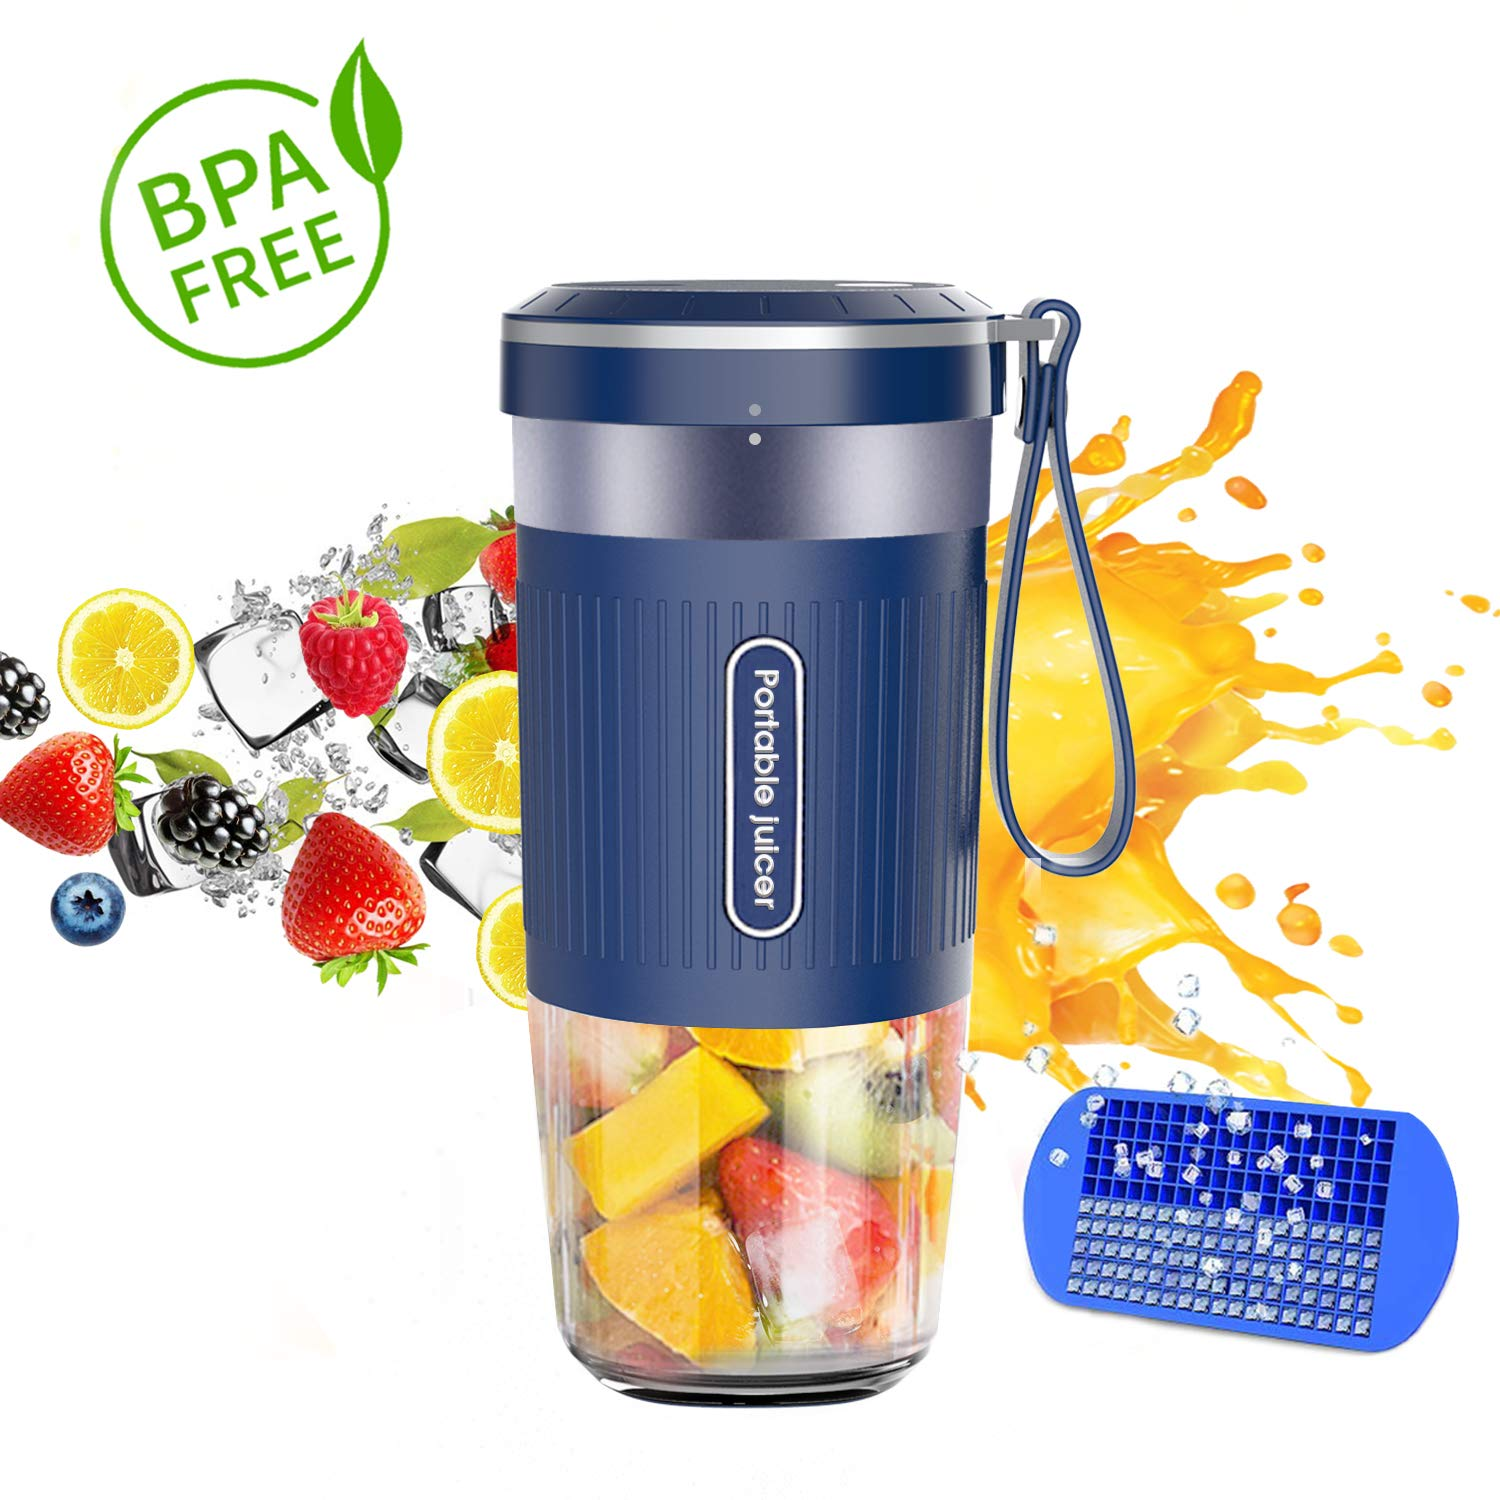 Portable Blender, Cordless Personal Blender Juicer, Mini Mixer, Waterproof Smoothie Blender With USB Rechargeable, BPA Free Tritan 300ml, Home, Office, Sports, Travel, Outdoors by Chefavor